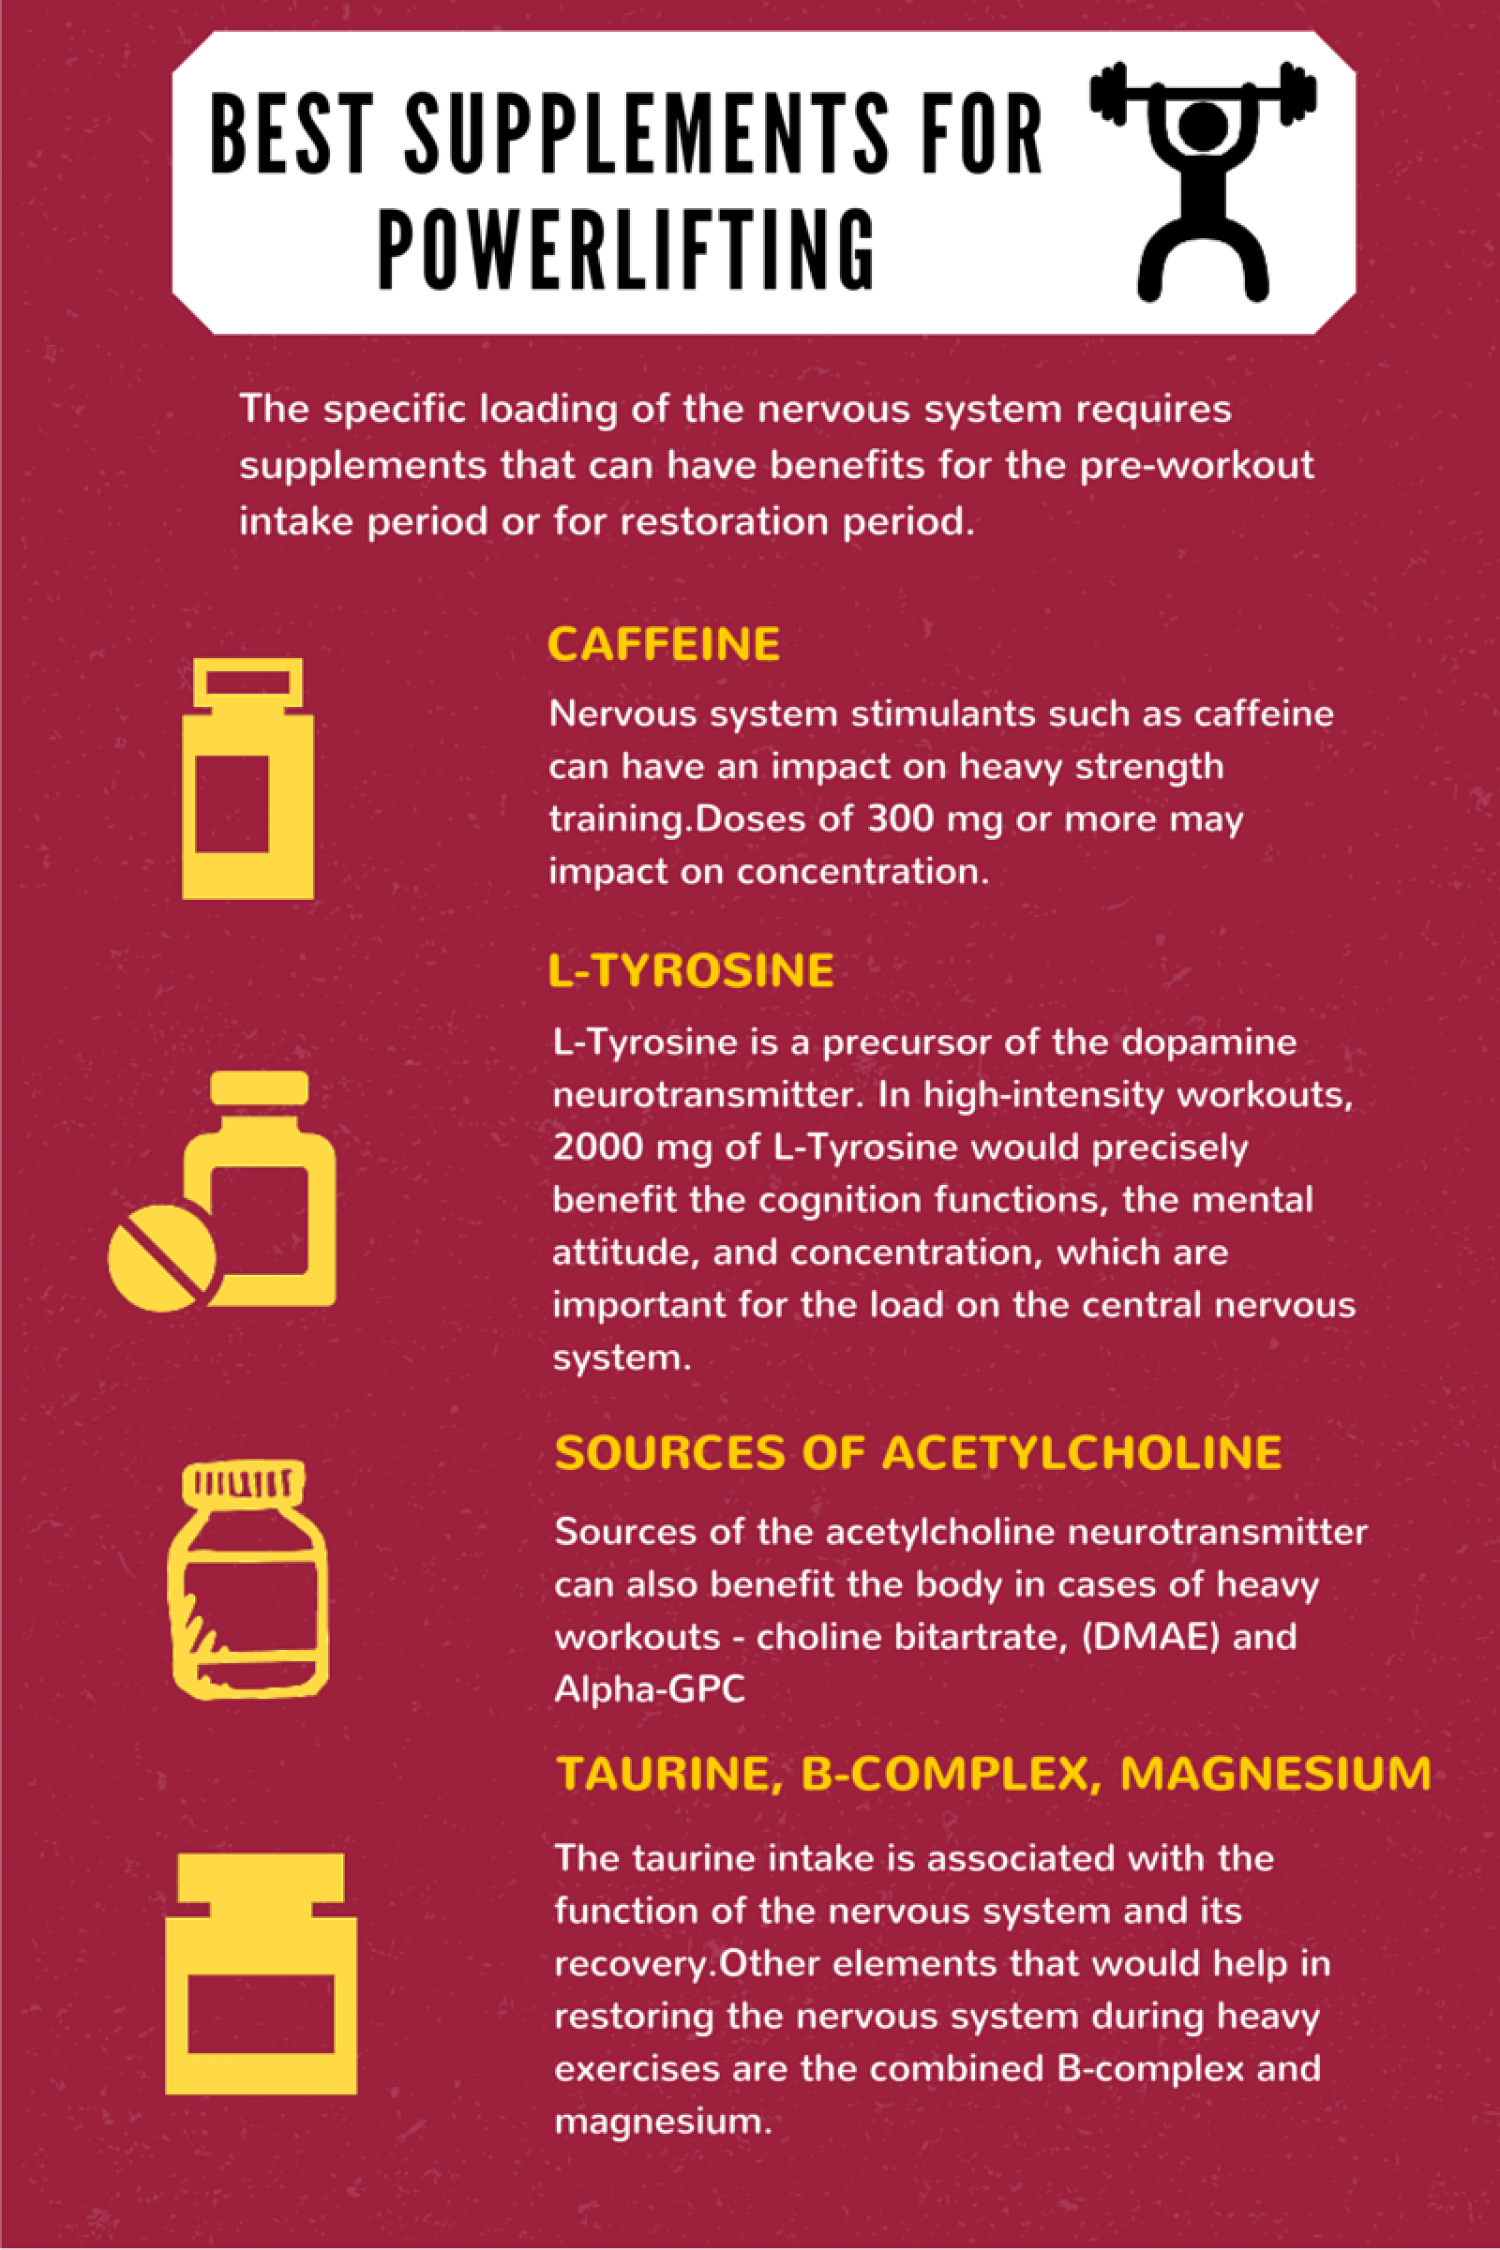 Shares best supplements for powerlifting Infographic